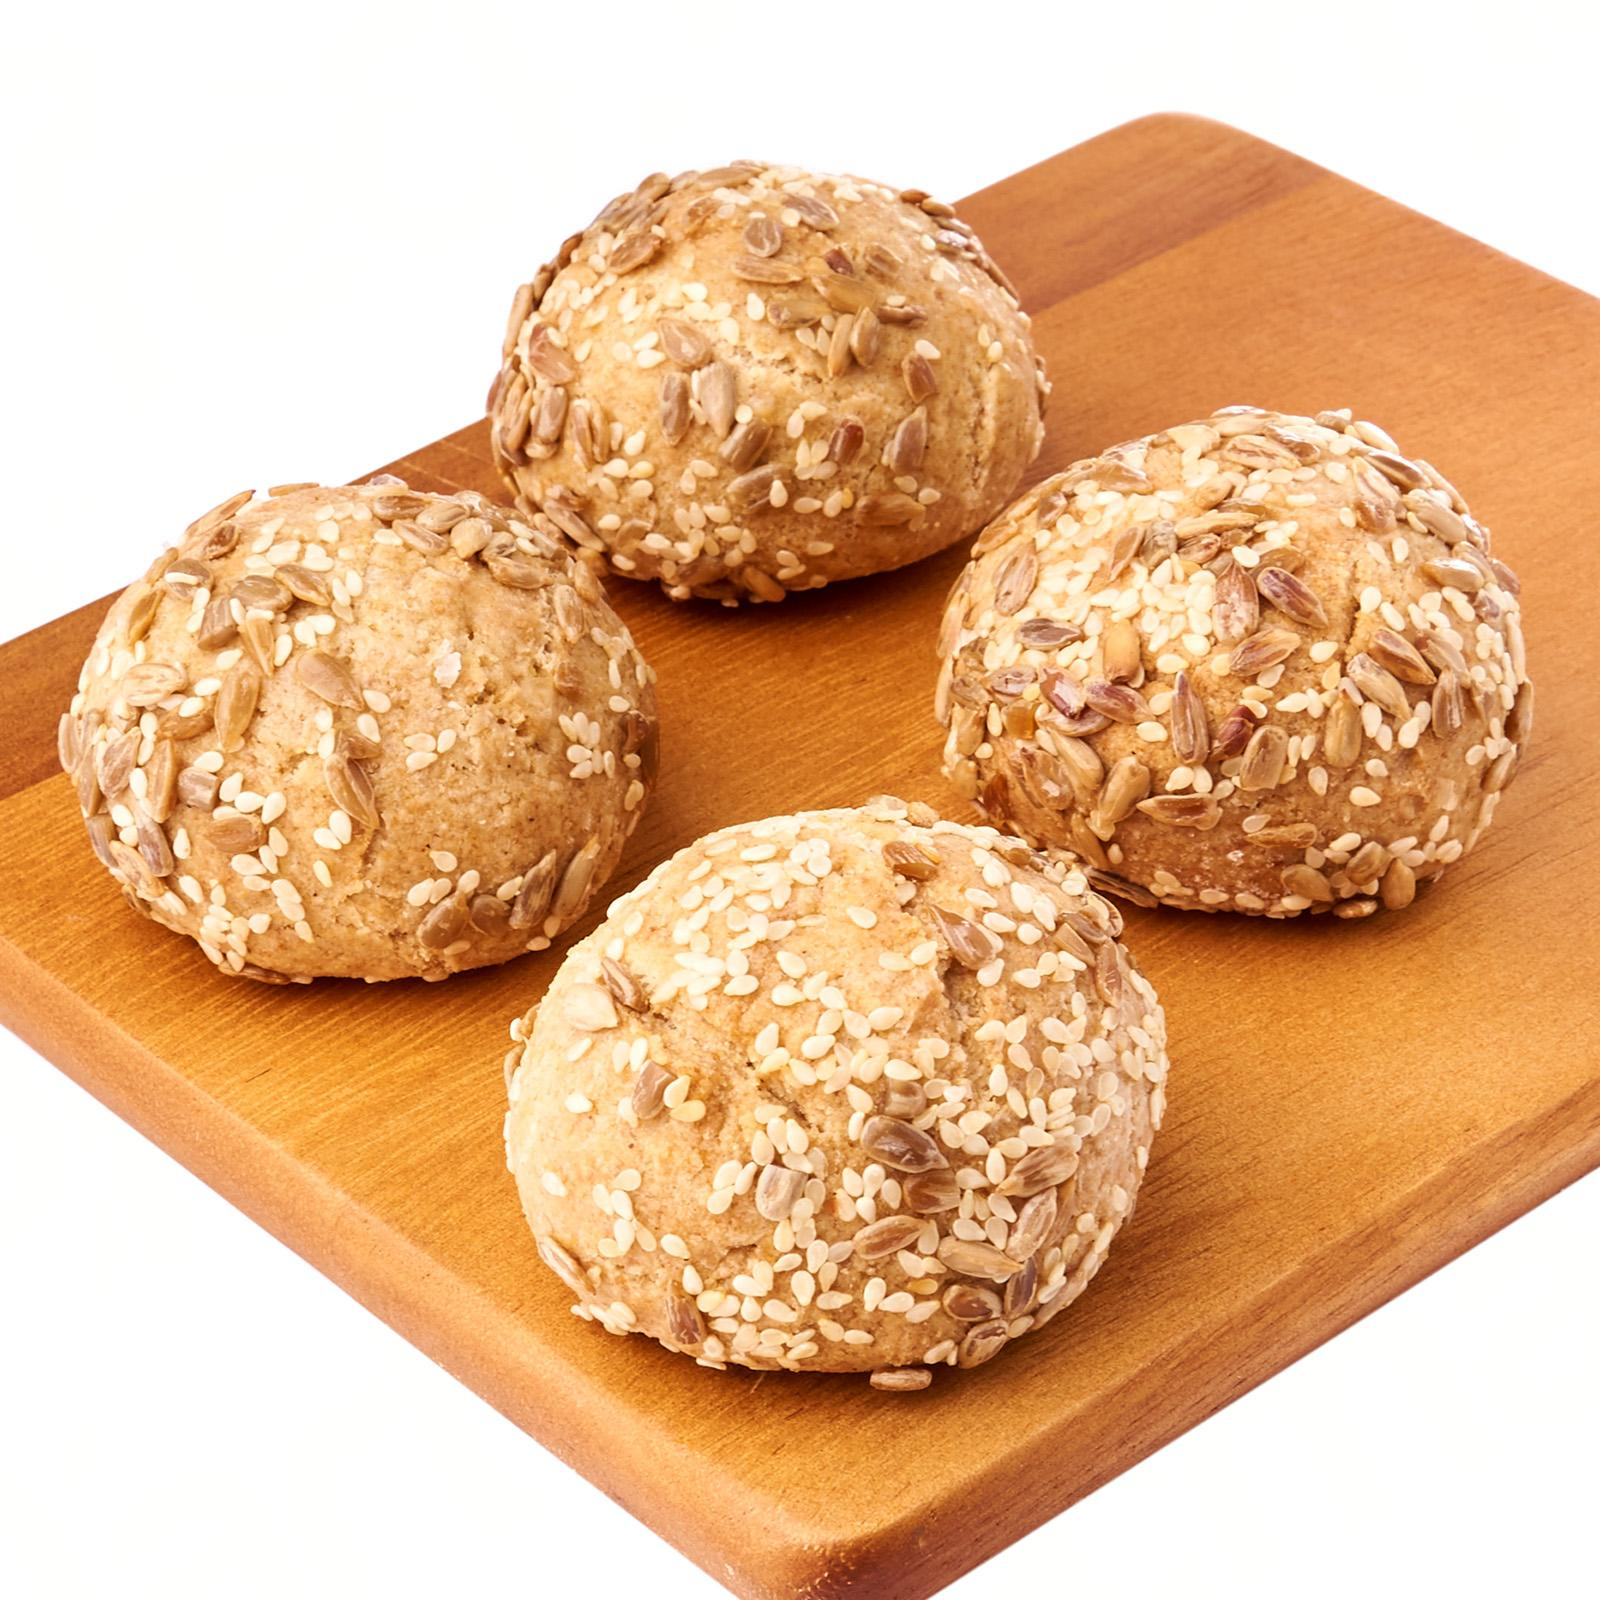 Delcie's Desserts and Cakes Keto Bread Roll - Sunflower seeds with Sesame (Vegan Gluten Free Diabetes Friendly Low Carb Keto Friendly) - Frozen